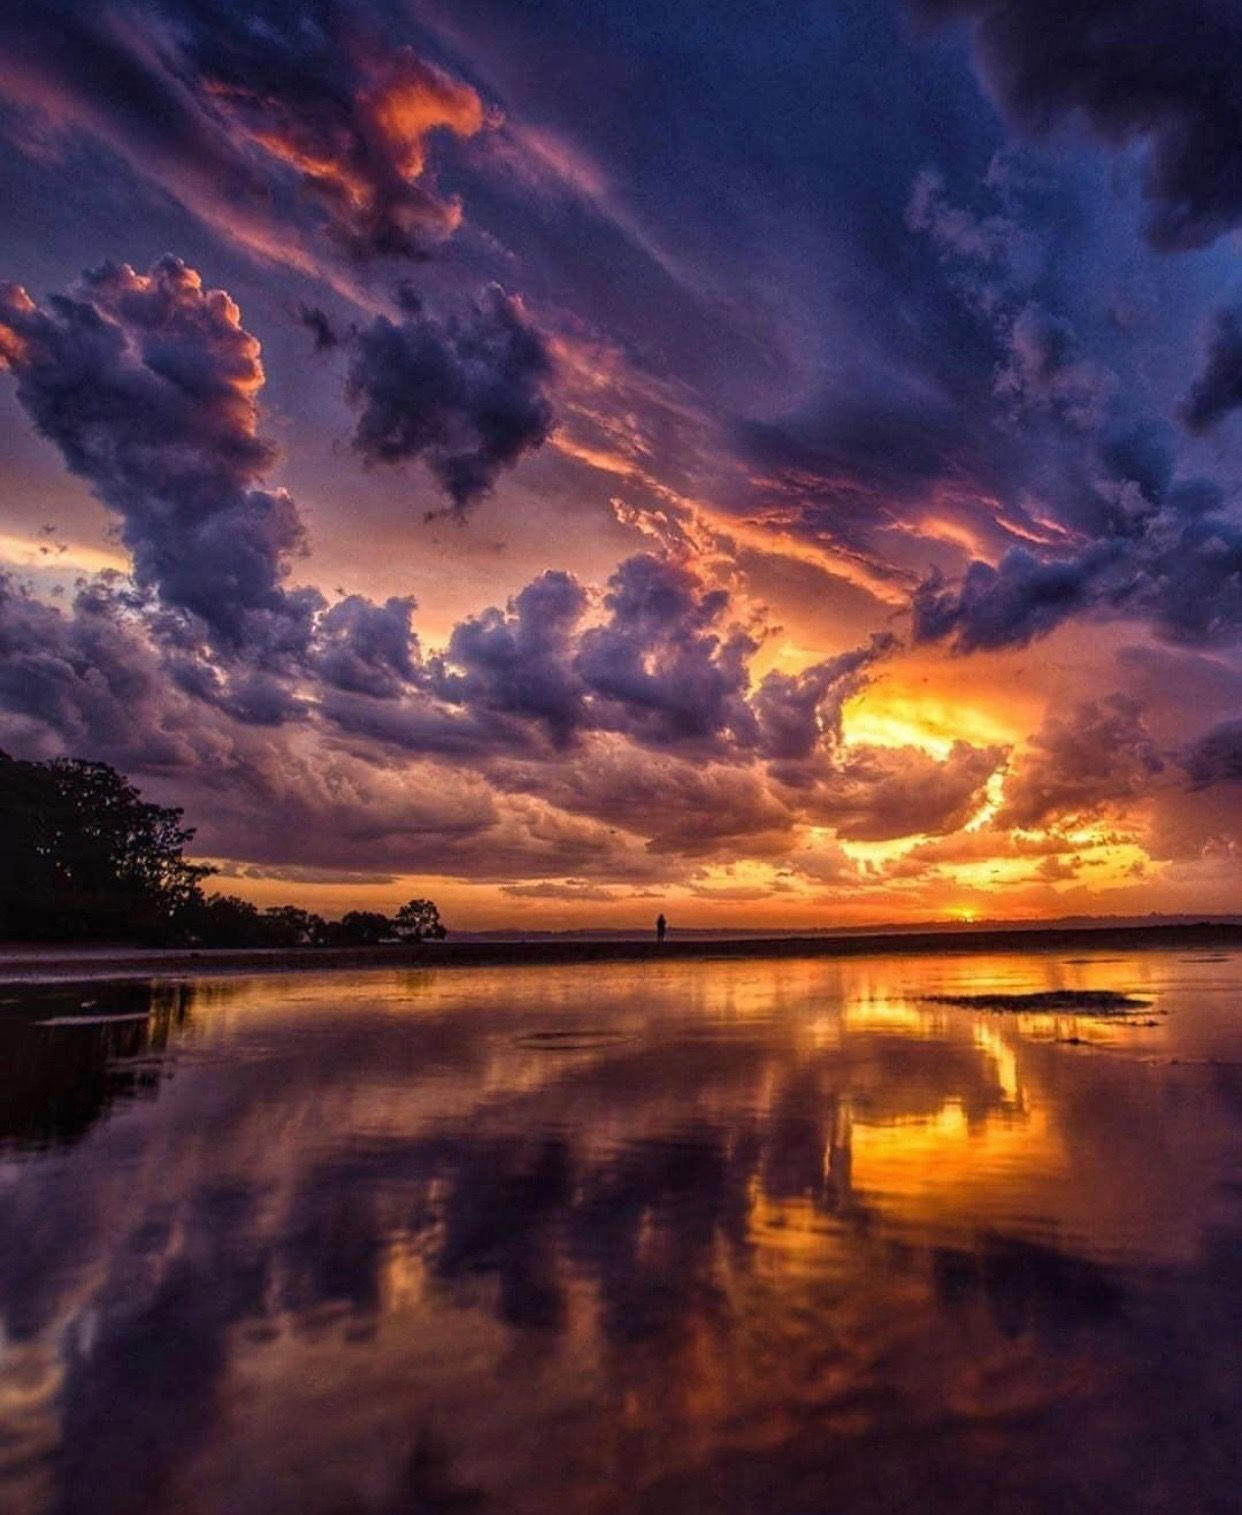 Pin By Lef On Landscapes With Images Sunset Photography Nature Sunset Landscape Sky Landscape